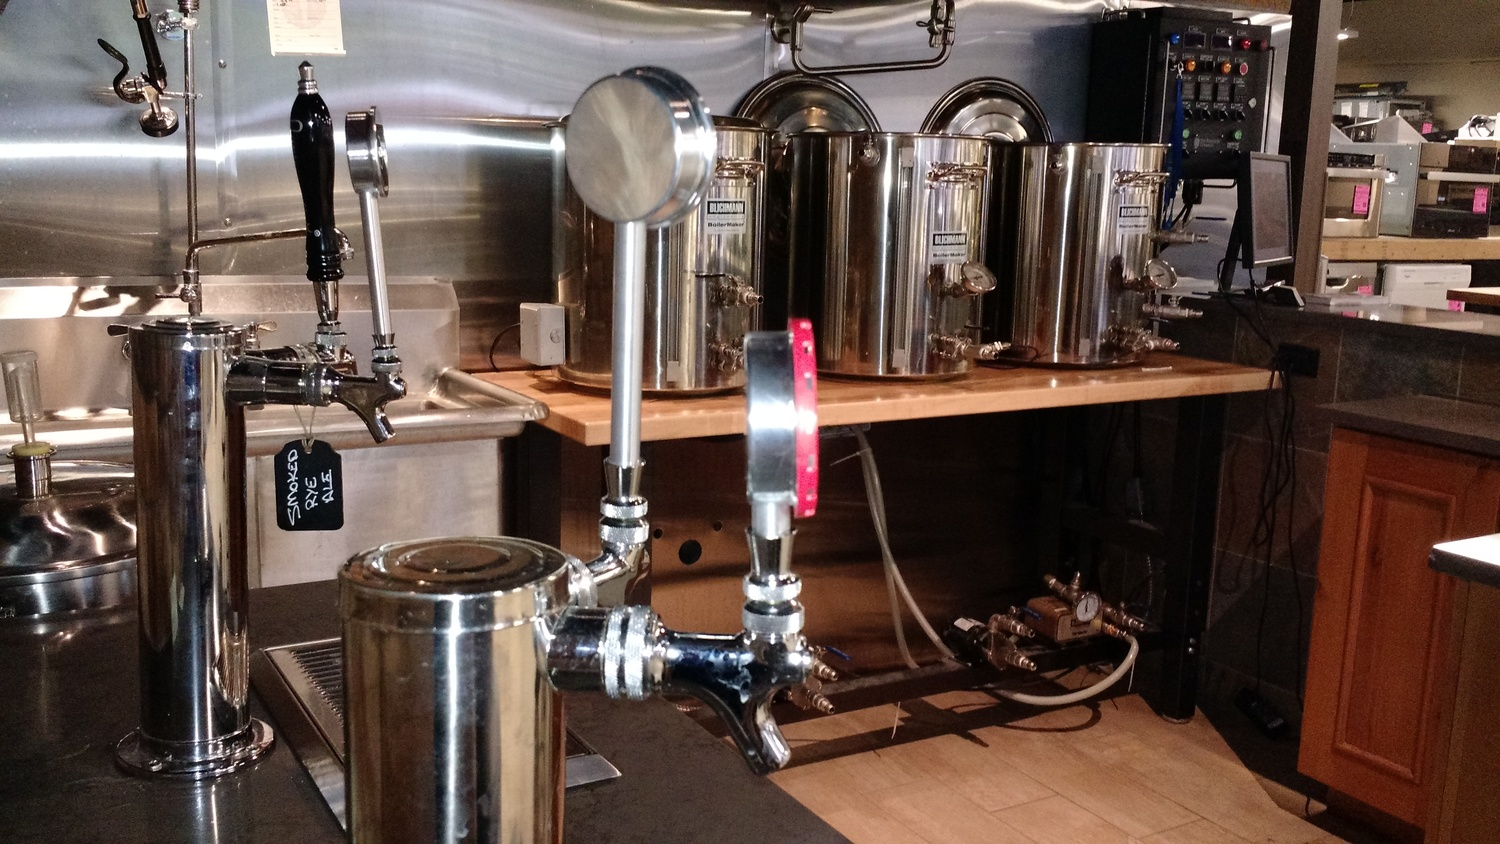 Beer tap systems for home - Ultimate Home Brewing Setup